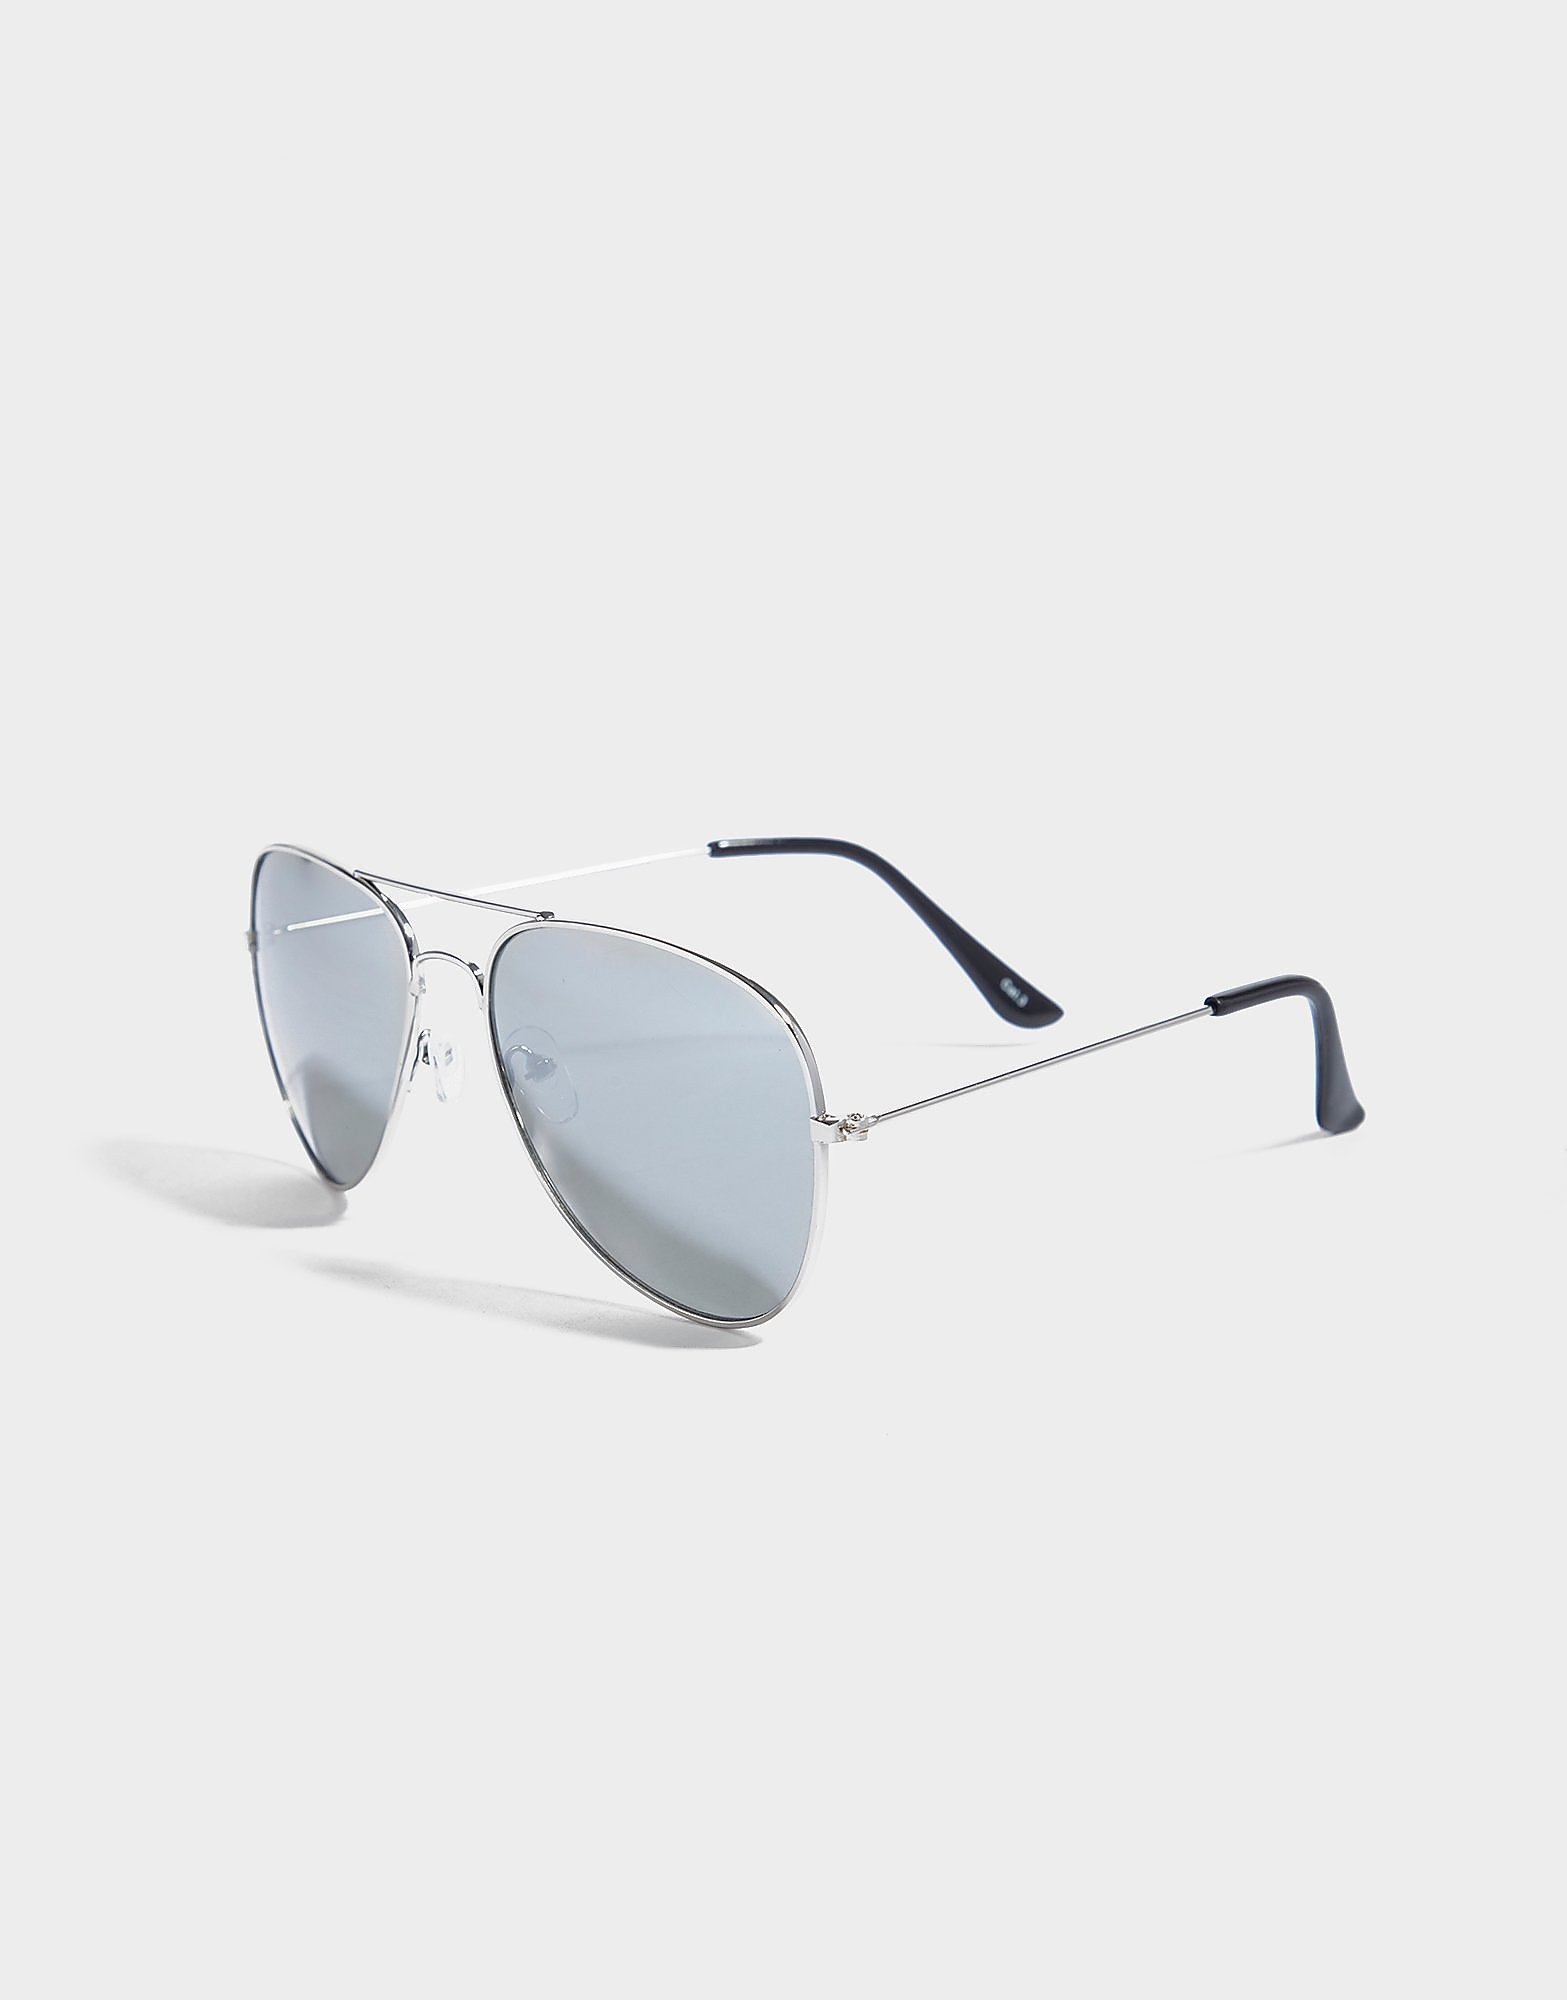 Brookhaven Francis Mirrored Aviator Sonnenbrille